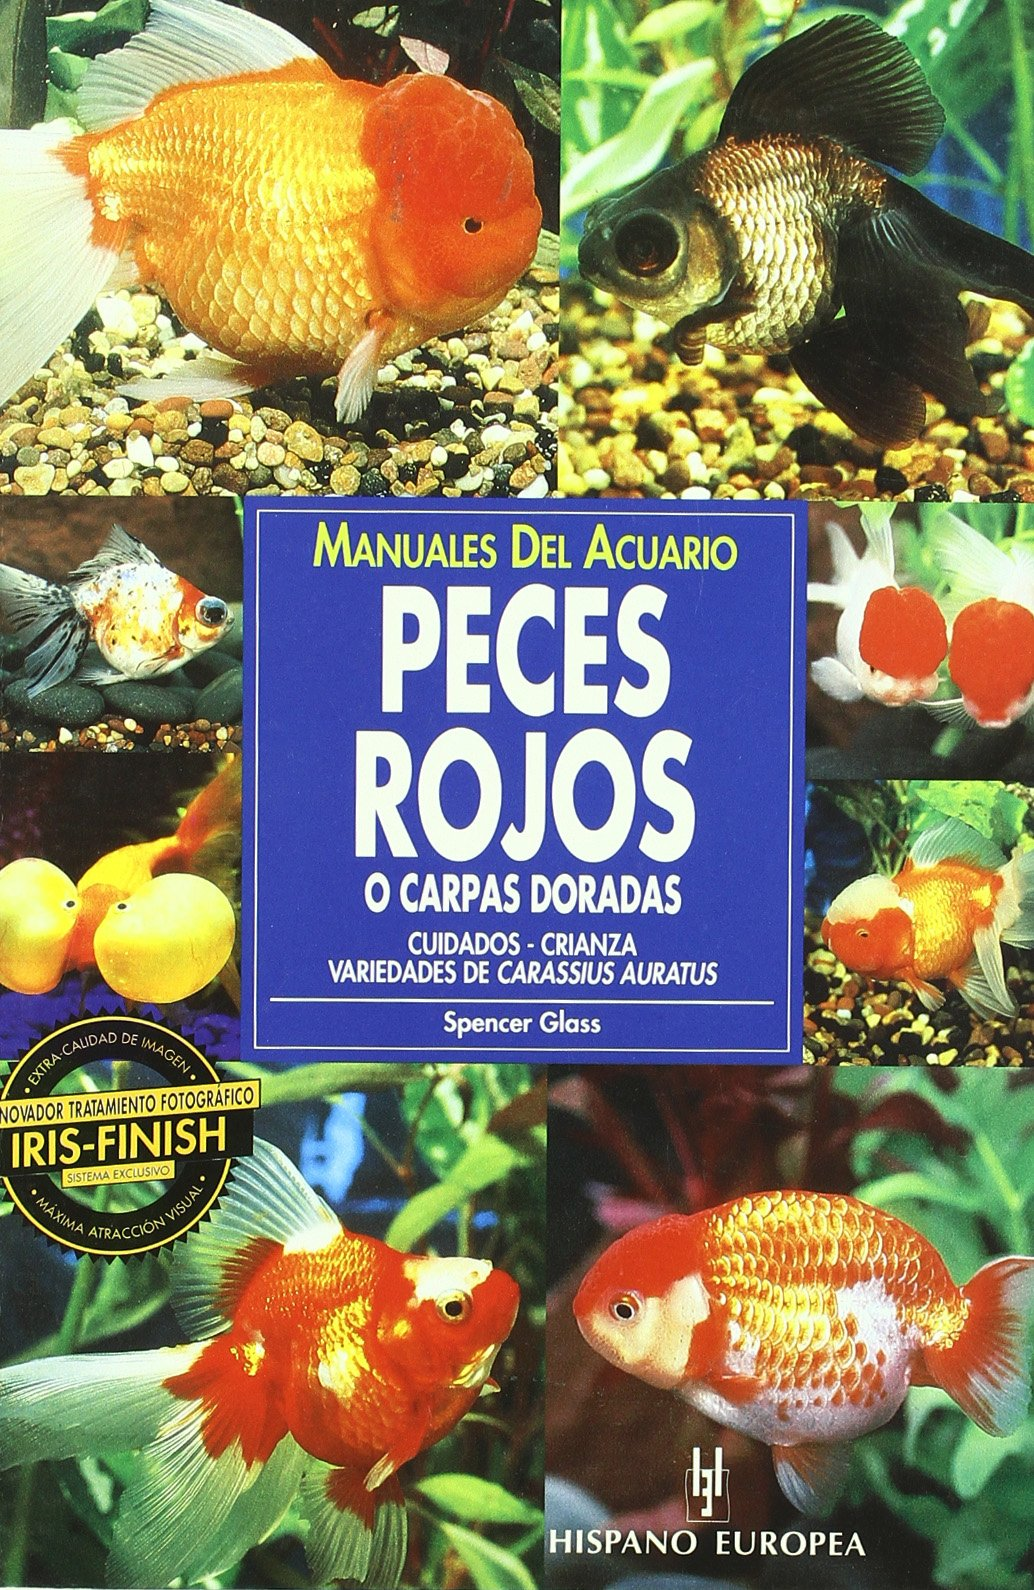 Peces rojos o Carpas doradas/ Goldfish: Cuidados, Crianza. Variedades De Carassius Auratus/ Keeping and Breeding them in Captivity (Manuales del Acuario/ Aquarium Guides) (Spanish Edition)